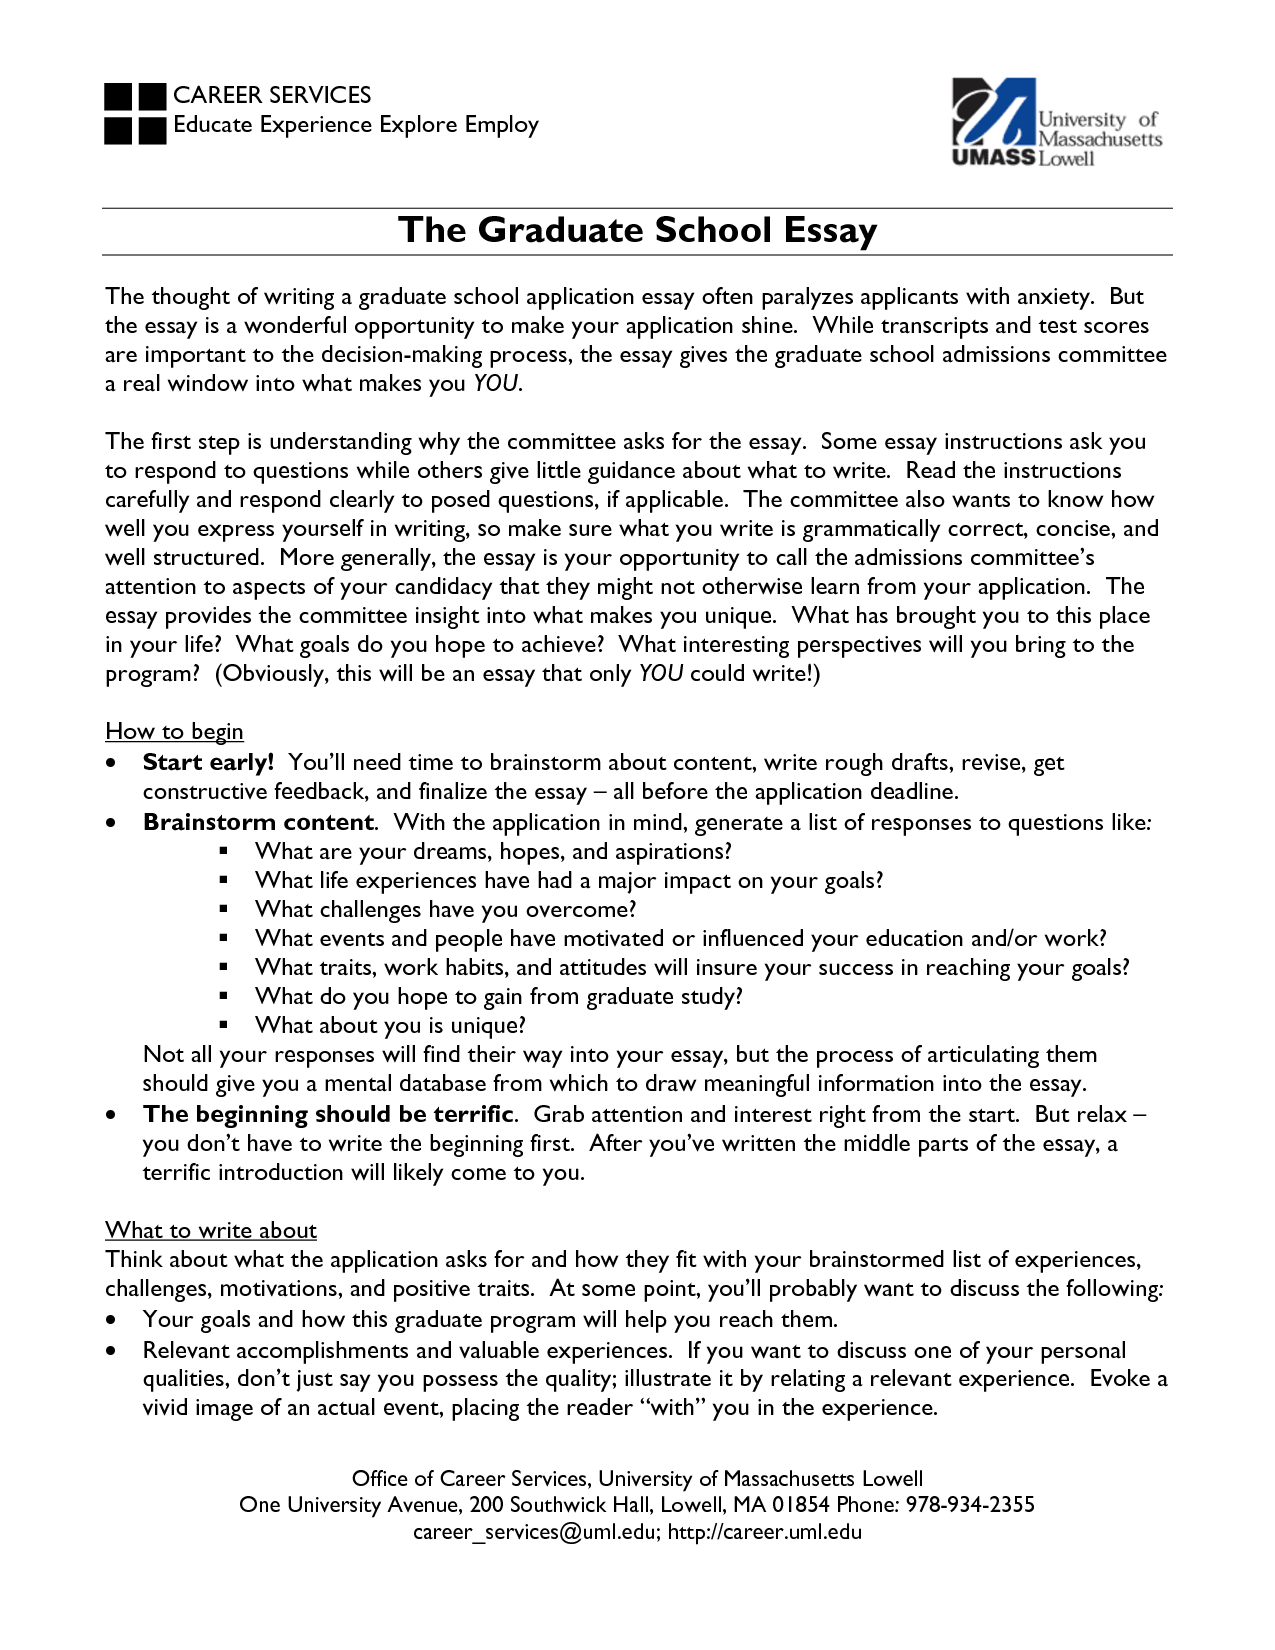 Samples of graduate essay